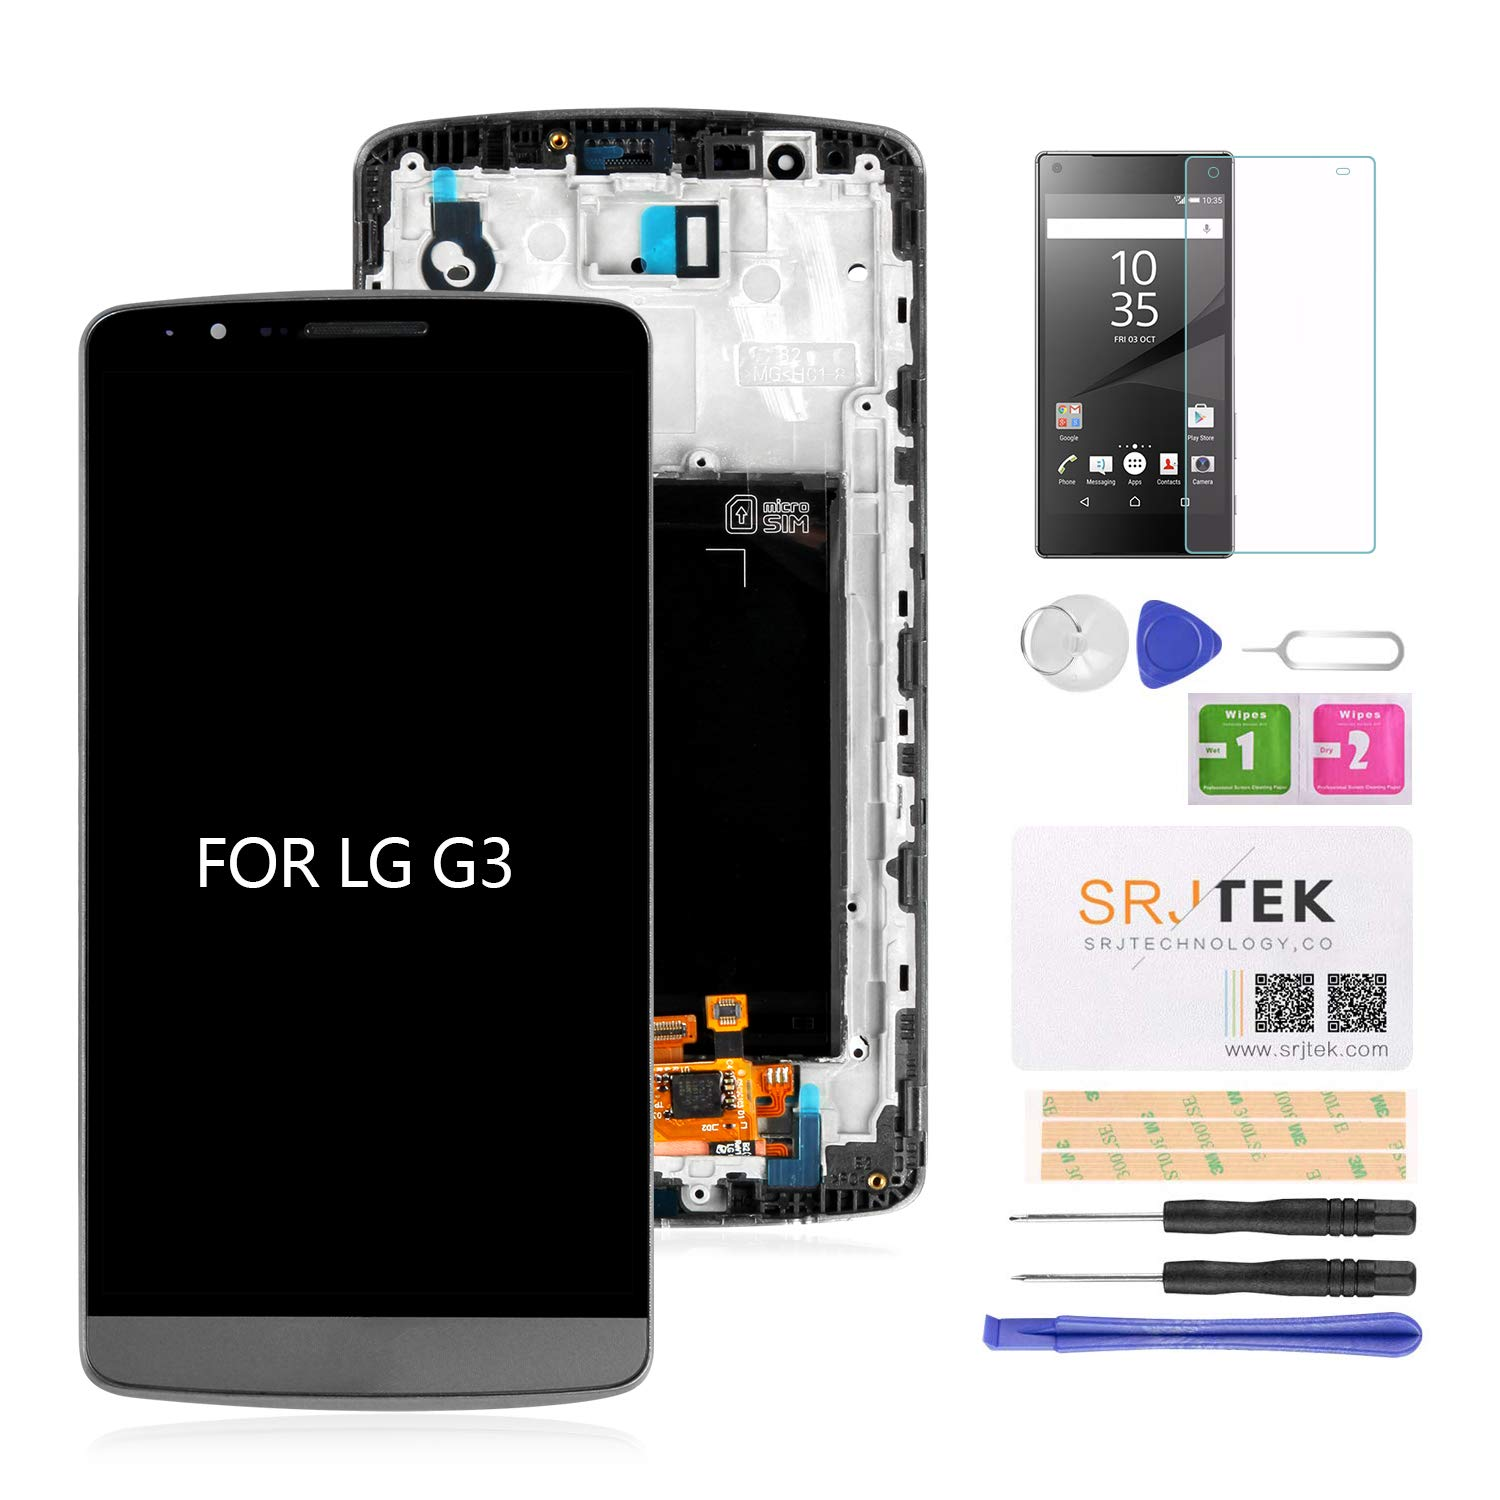 SRJTEK Screen Replacement for LG G3 LCD D850 D851 D855 VS985 LS990 Display  Touch Digitizer Glass Sensor Frame Assembly,Repair Parts Kits,Tools